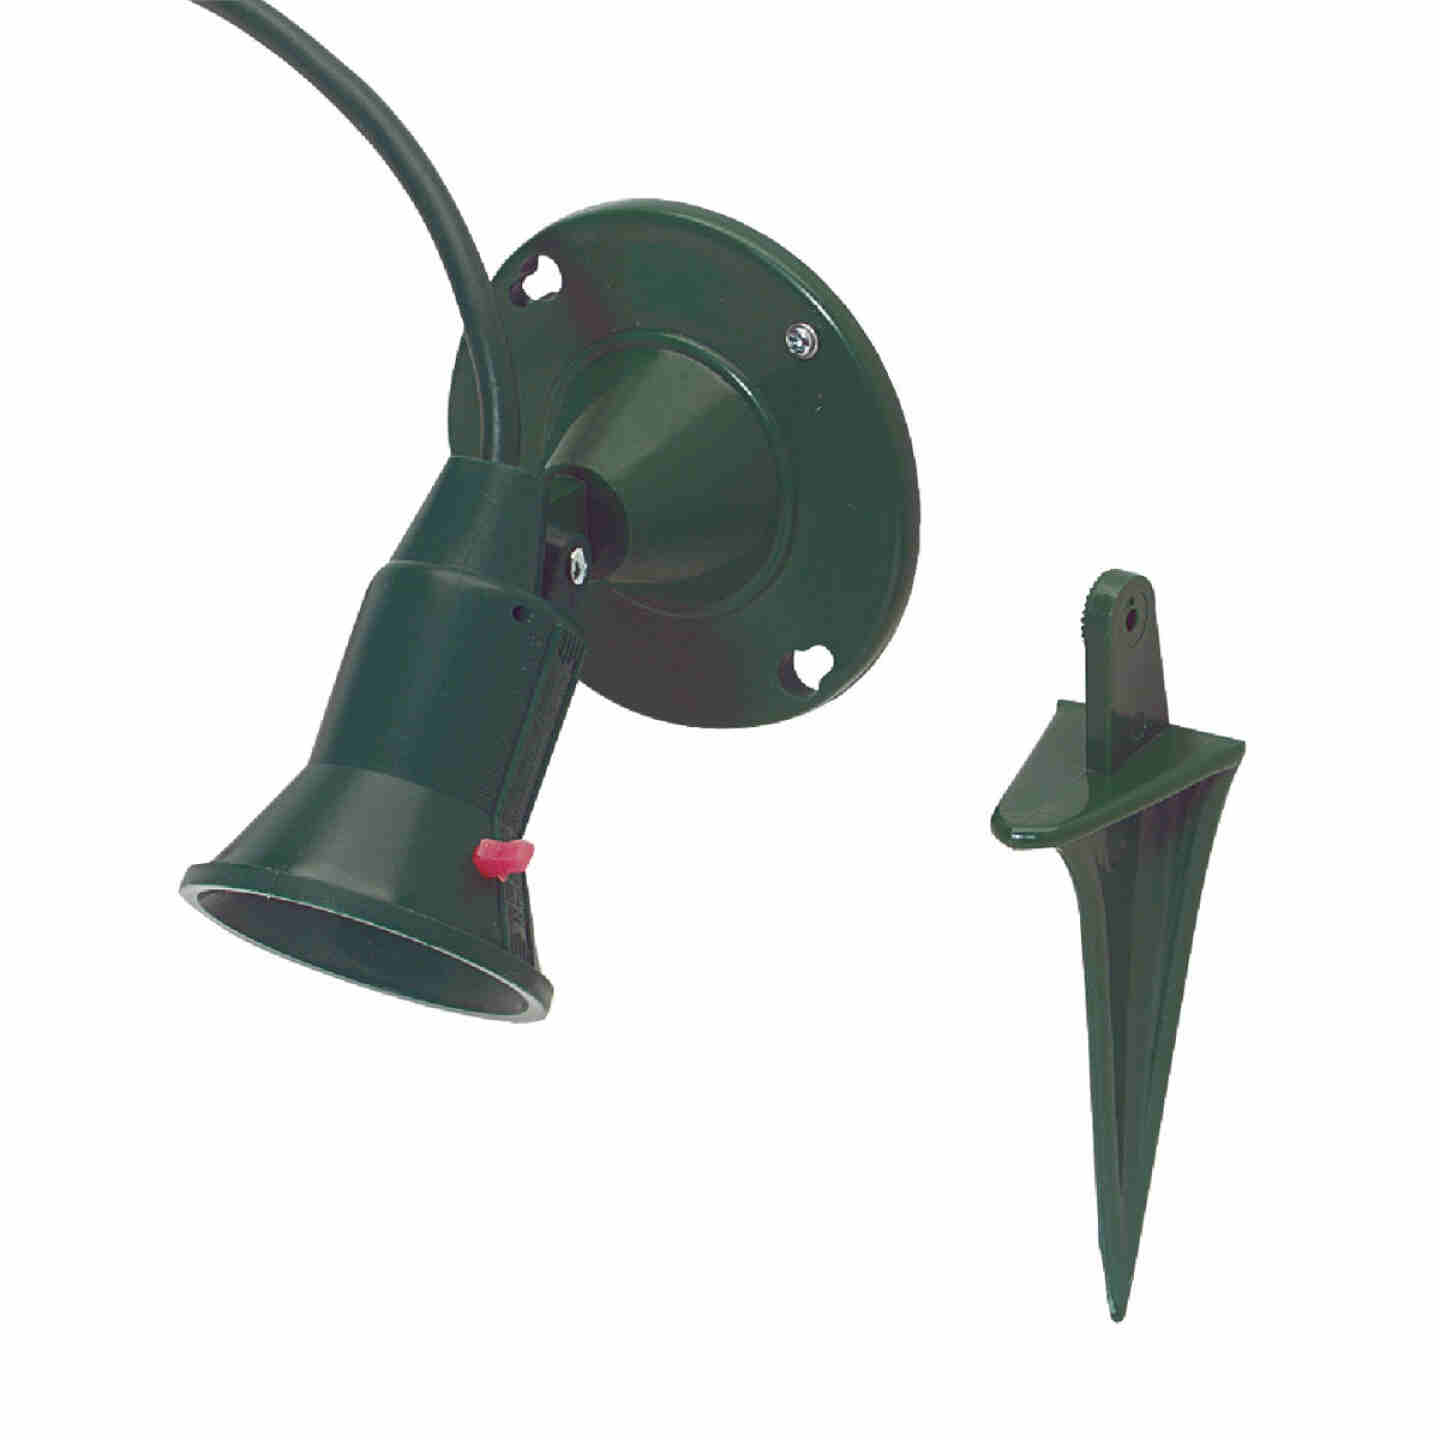 Do it 150W Plastic PAR38 Green Weatherproof Outdoor Lampholder Image 1